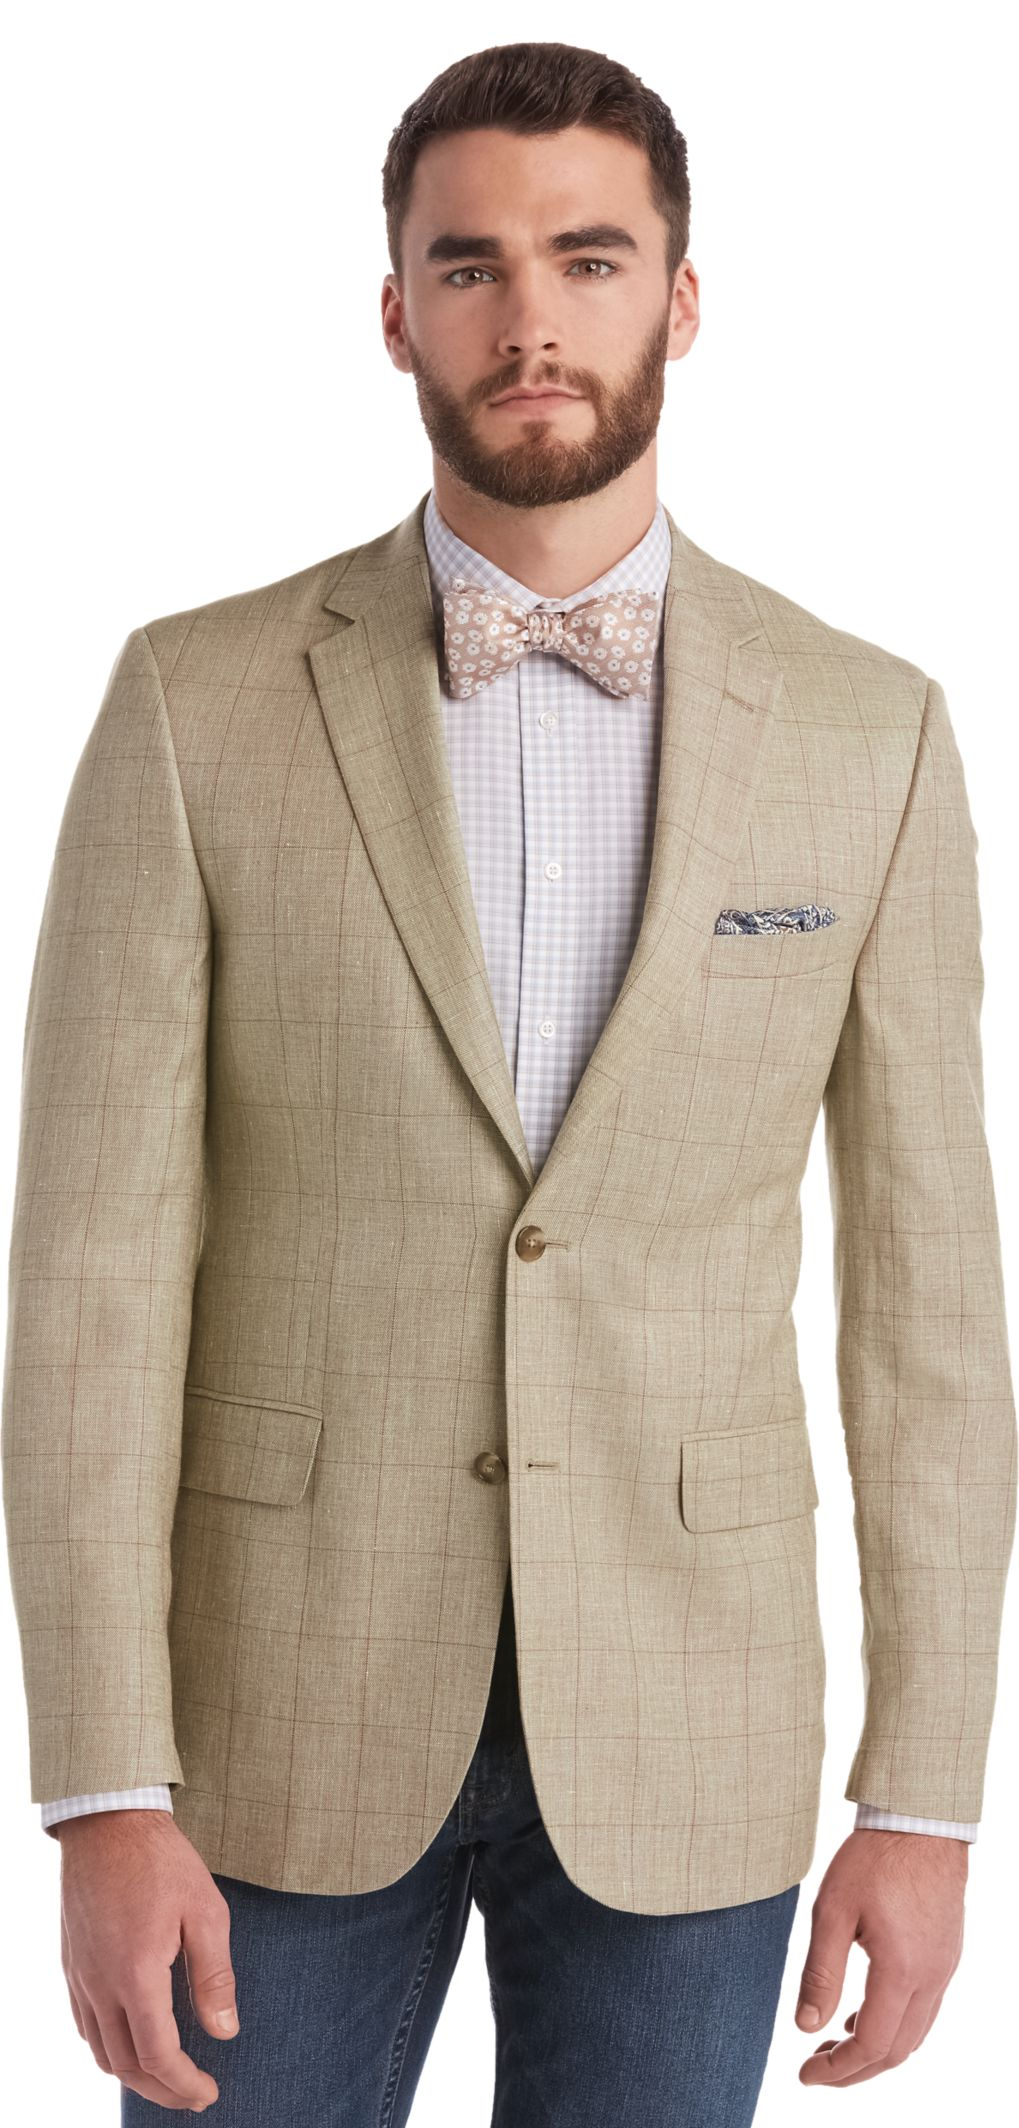 Clearance Sportcoats | Men&39s | JoS. A. Bank Clothiers